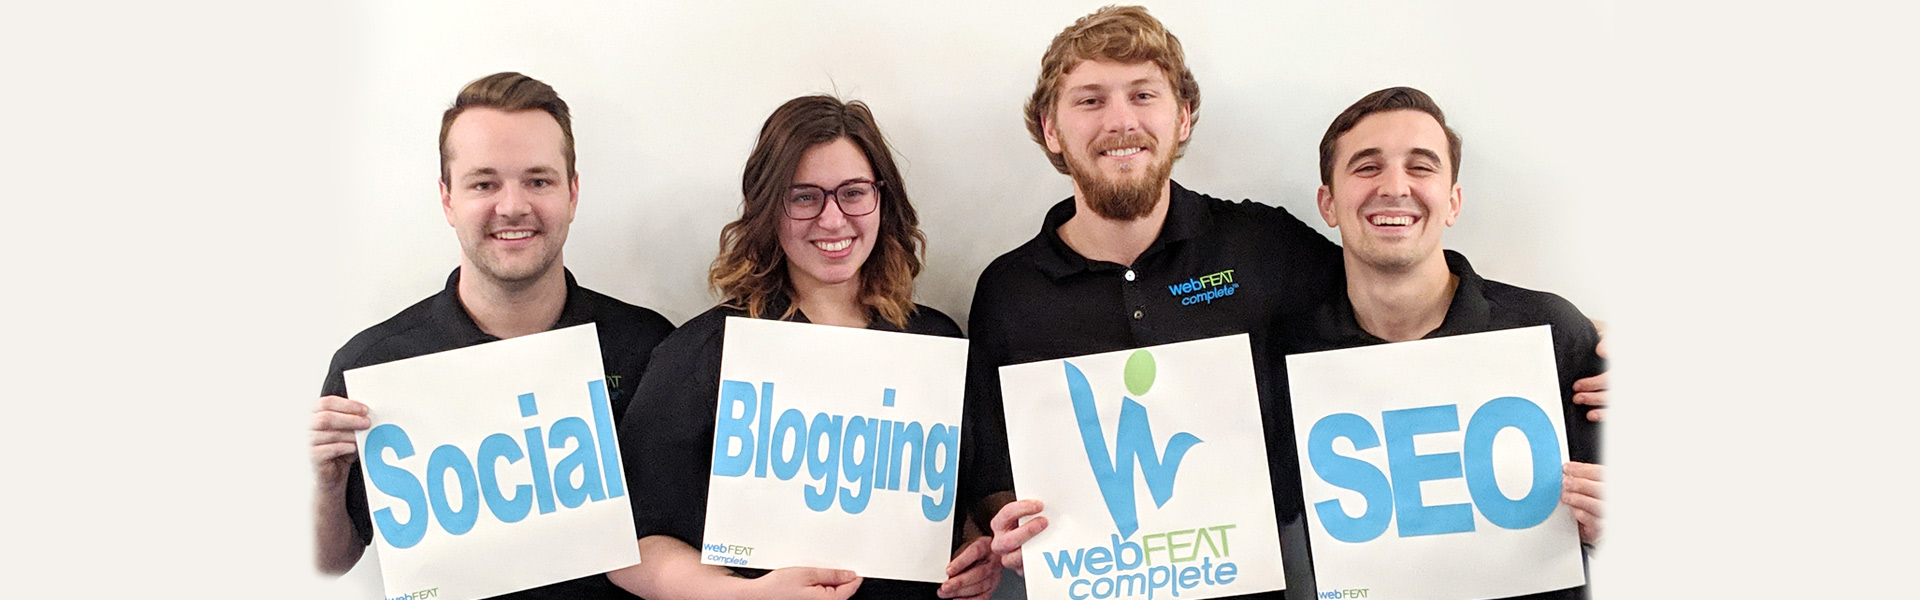 webFEAT Complete SEO Team